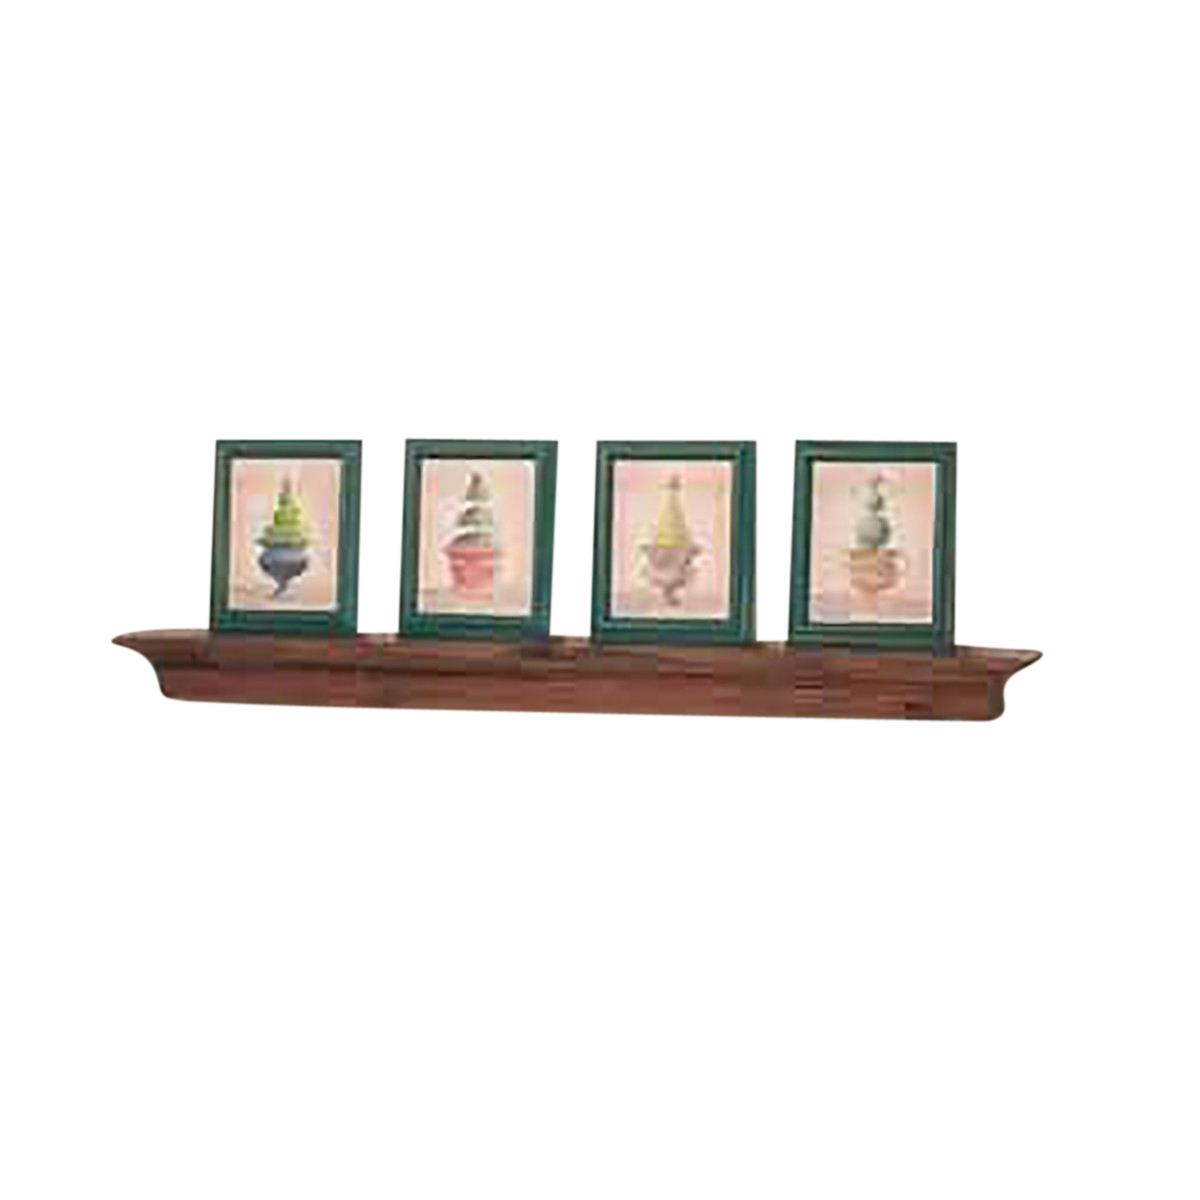 ... U003cPREu003eBathroom Shelves White Country Pine Mantle Shelf 40inchW ...